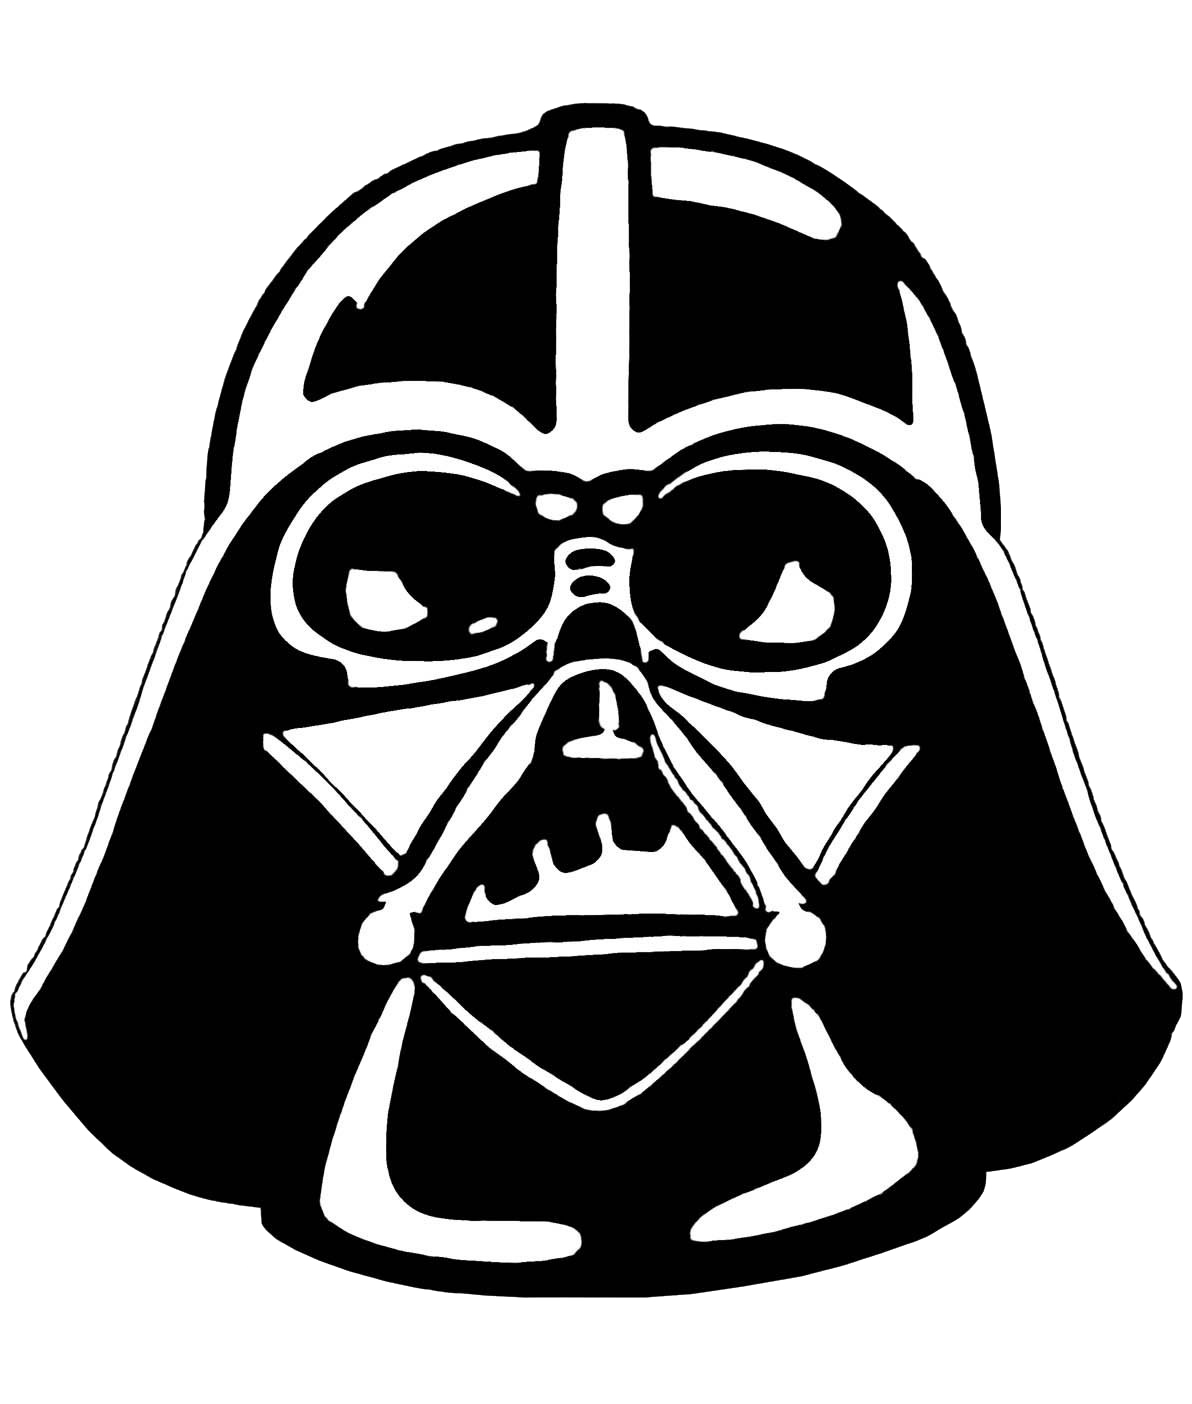 Darth vader stencil star wars clipart png